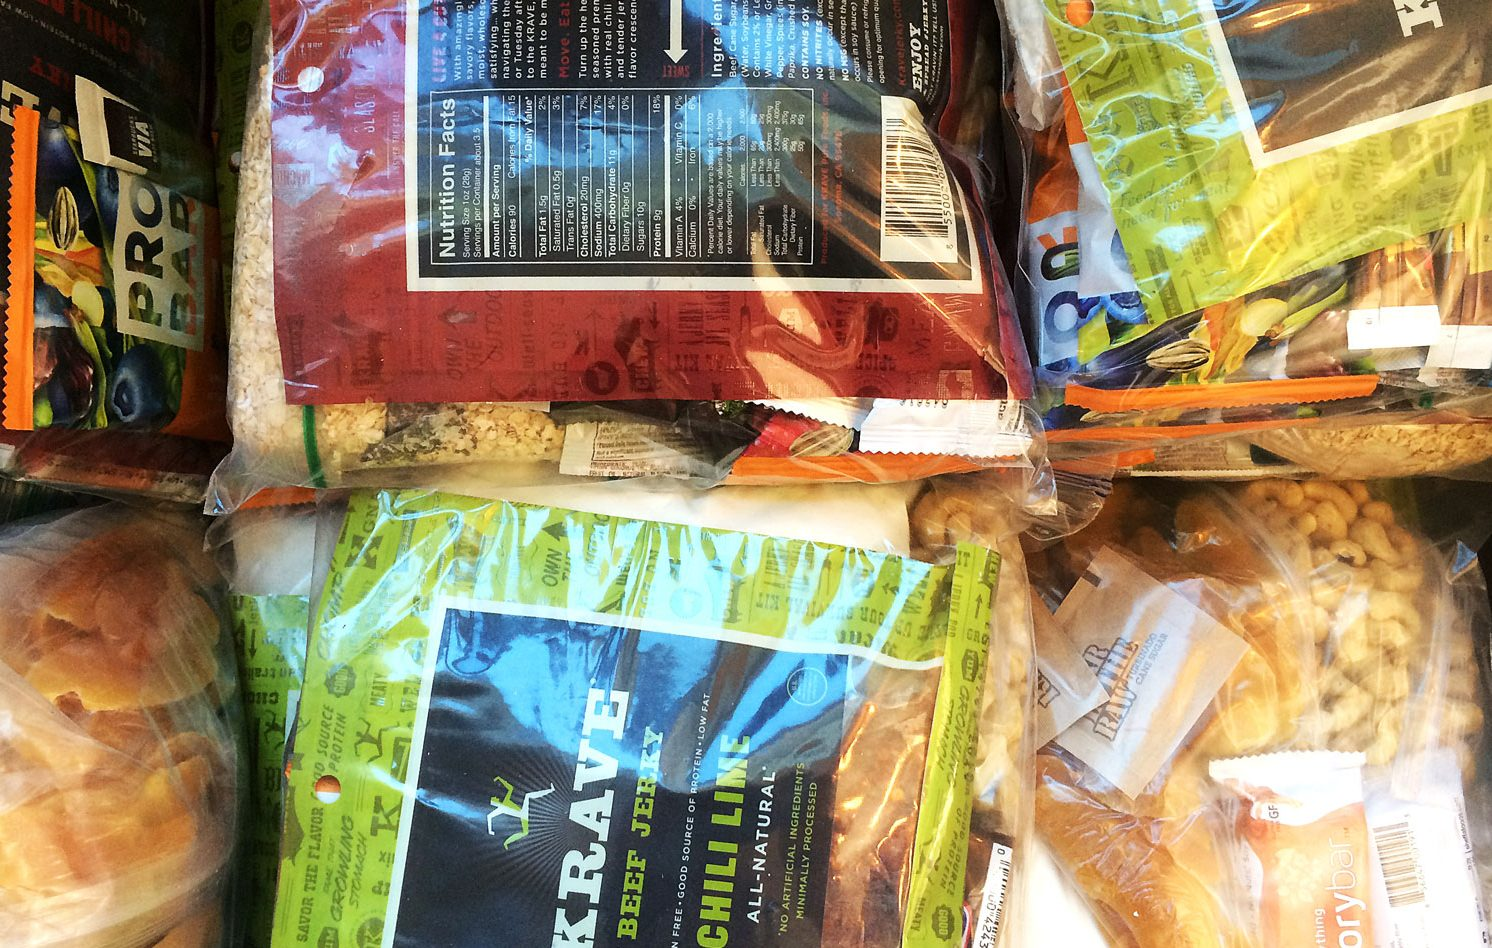 A photograph of an assorment of foods commonly used in ultralight backpacking recipes for extended hikes.